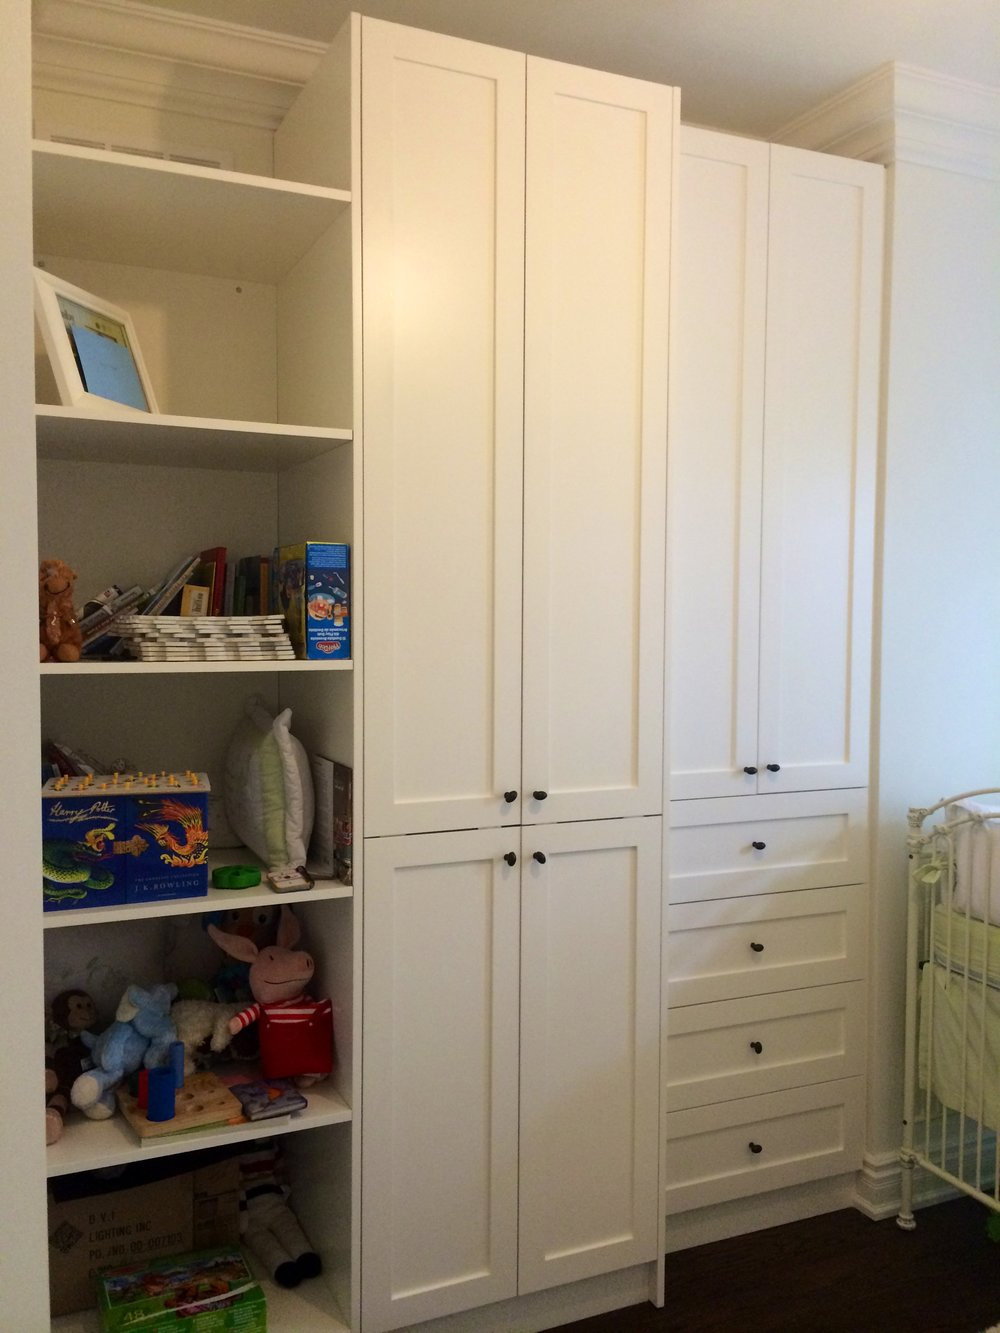 Babys Bedroom Closet   CUSTOM BUILT-IN CABINET FOR EXTRa storage in that new nursery. Low voc paint along with high quality natural wood products makes this a healthy choice for your baby.